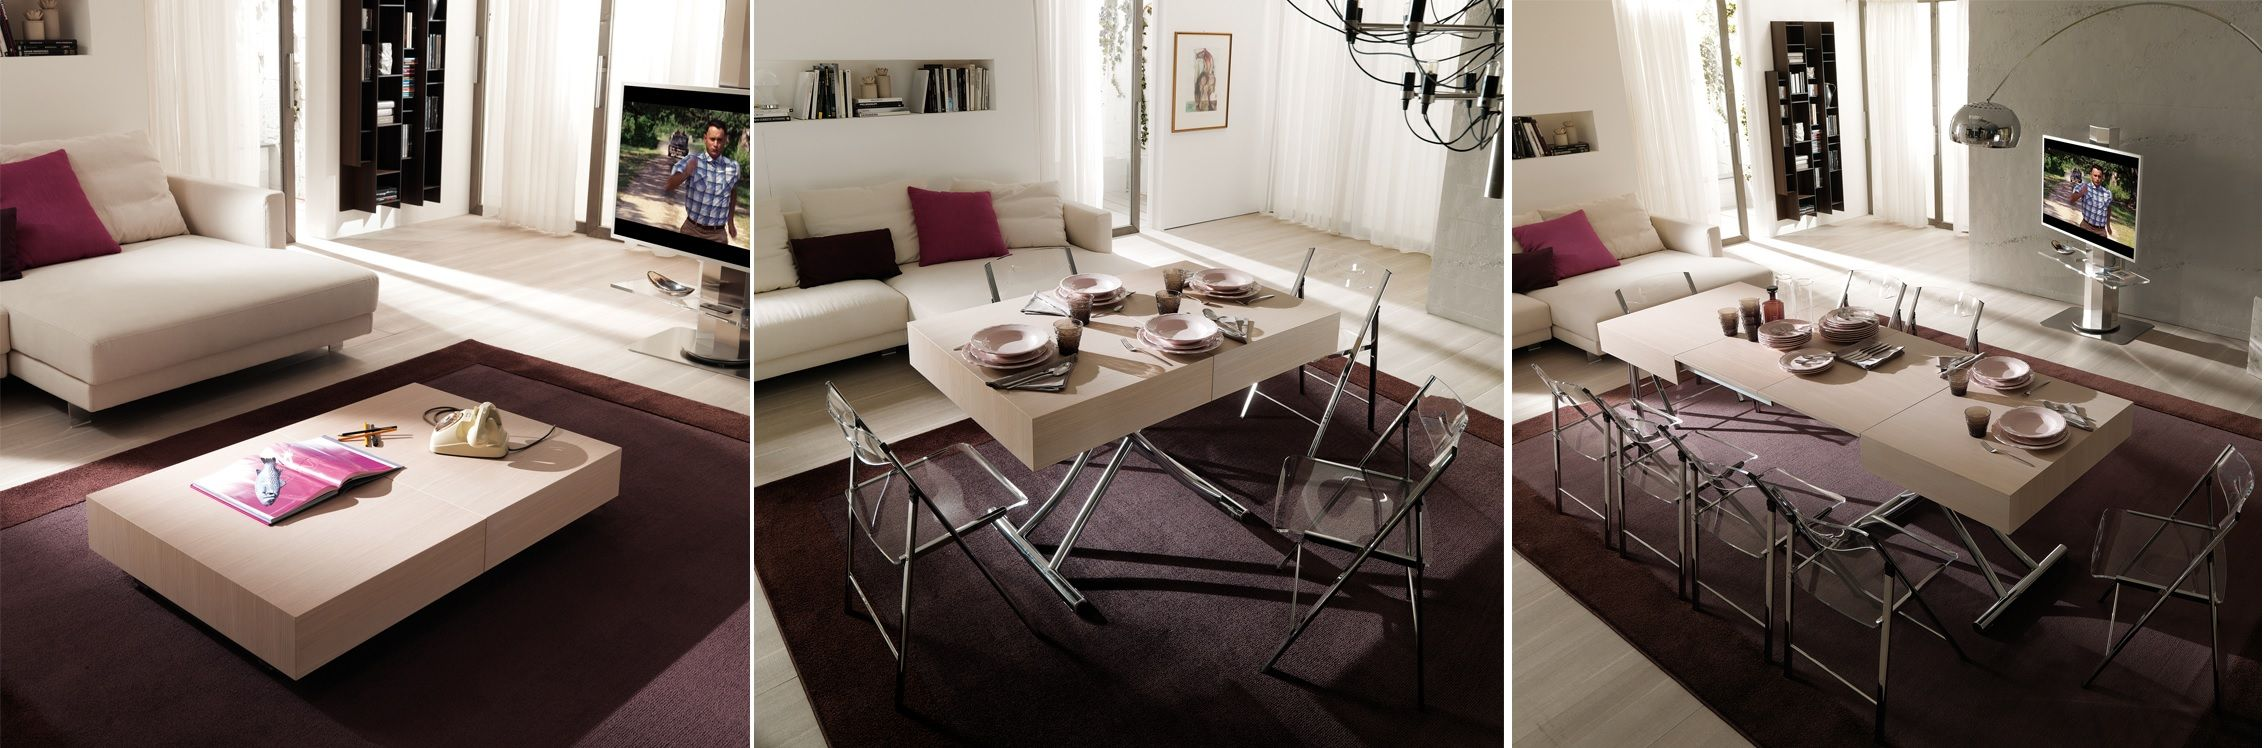 Magnum covertible coffee table